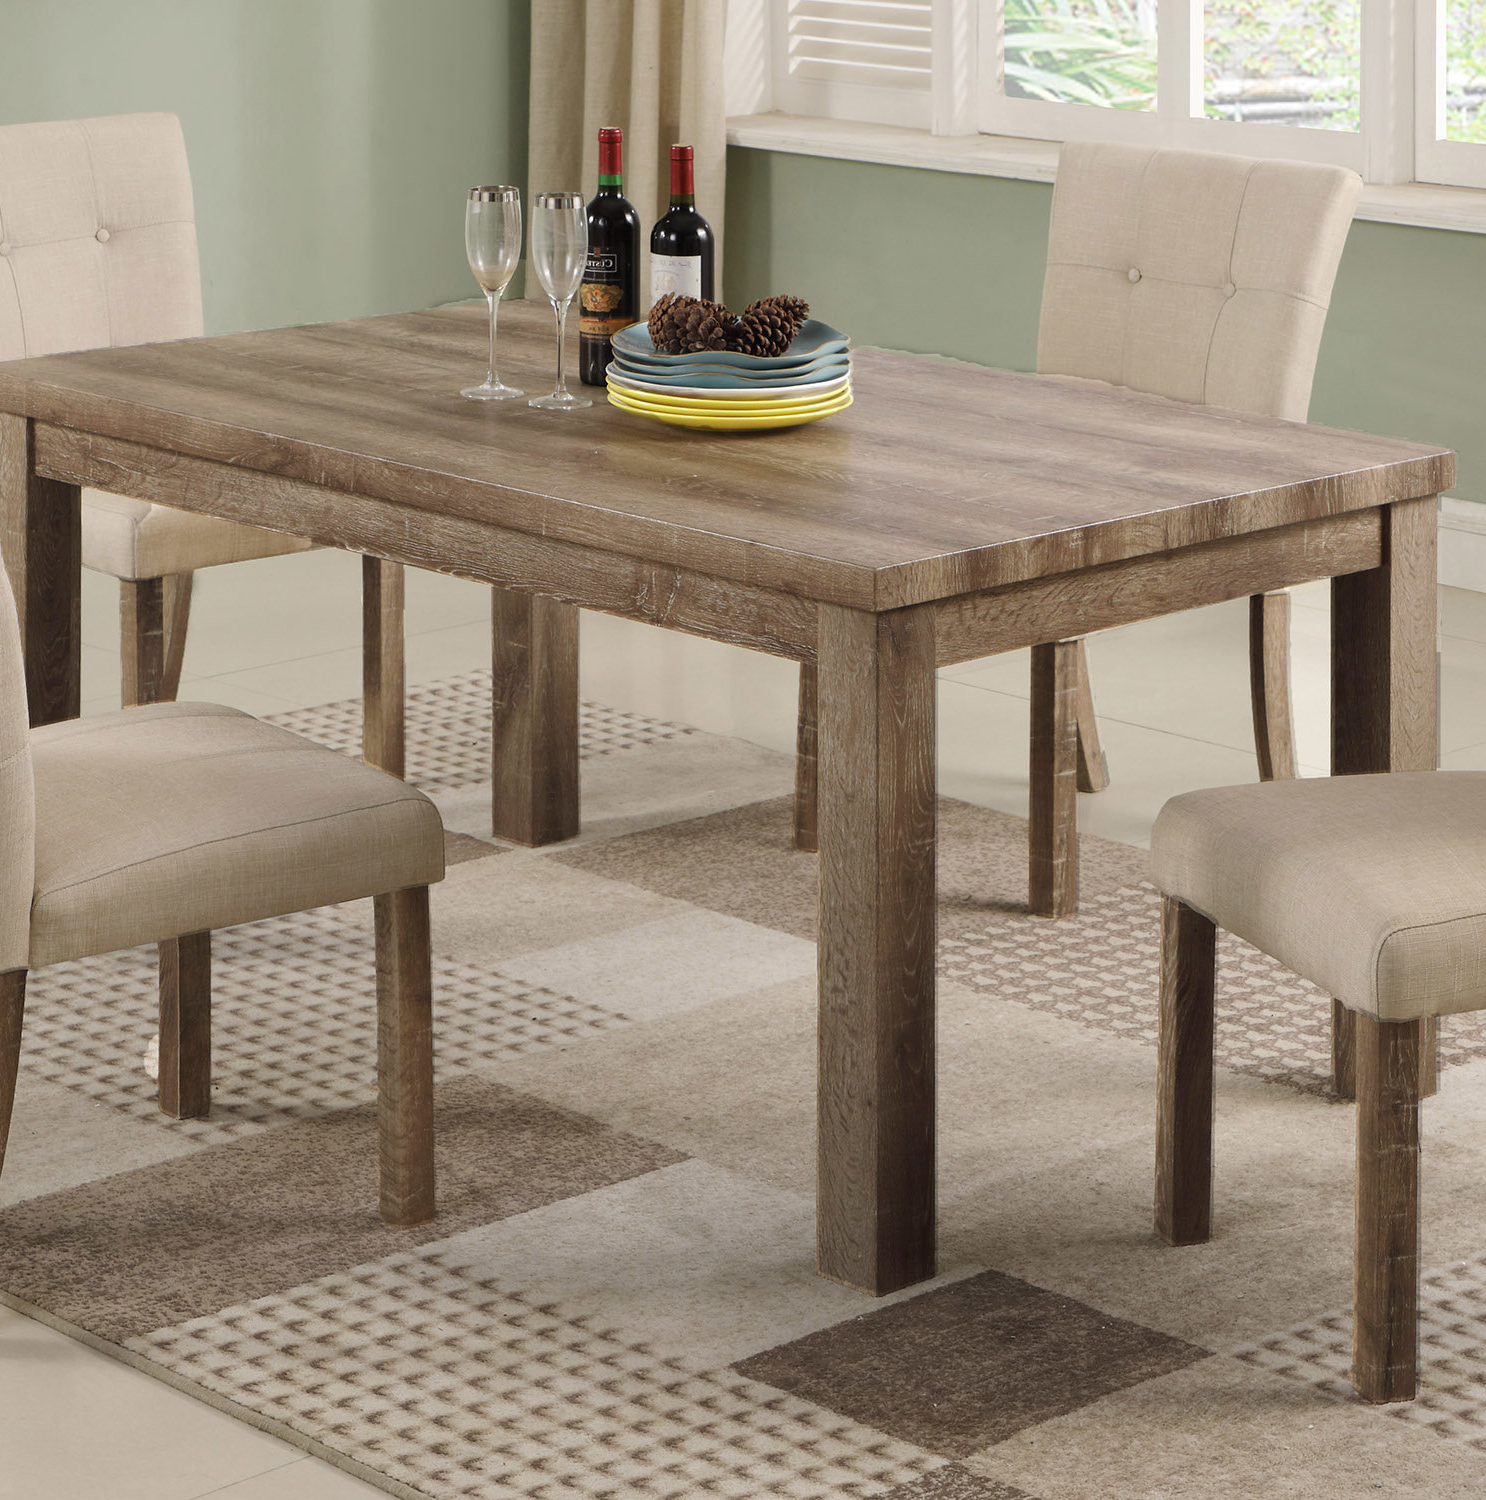 Ephraim 5 Piece Dining Sets Within Popular Millwood Pines Ephraim Dining Table (View 10 of 25)